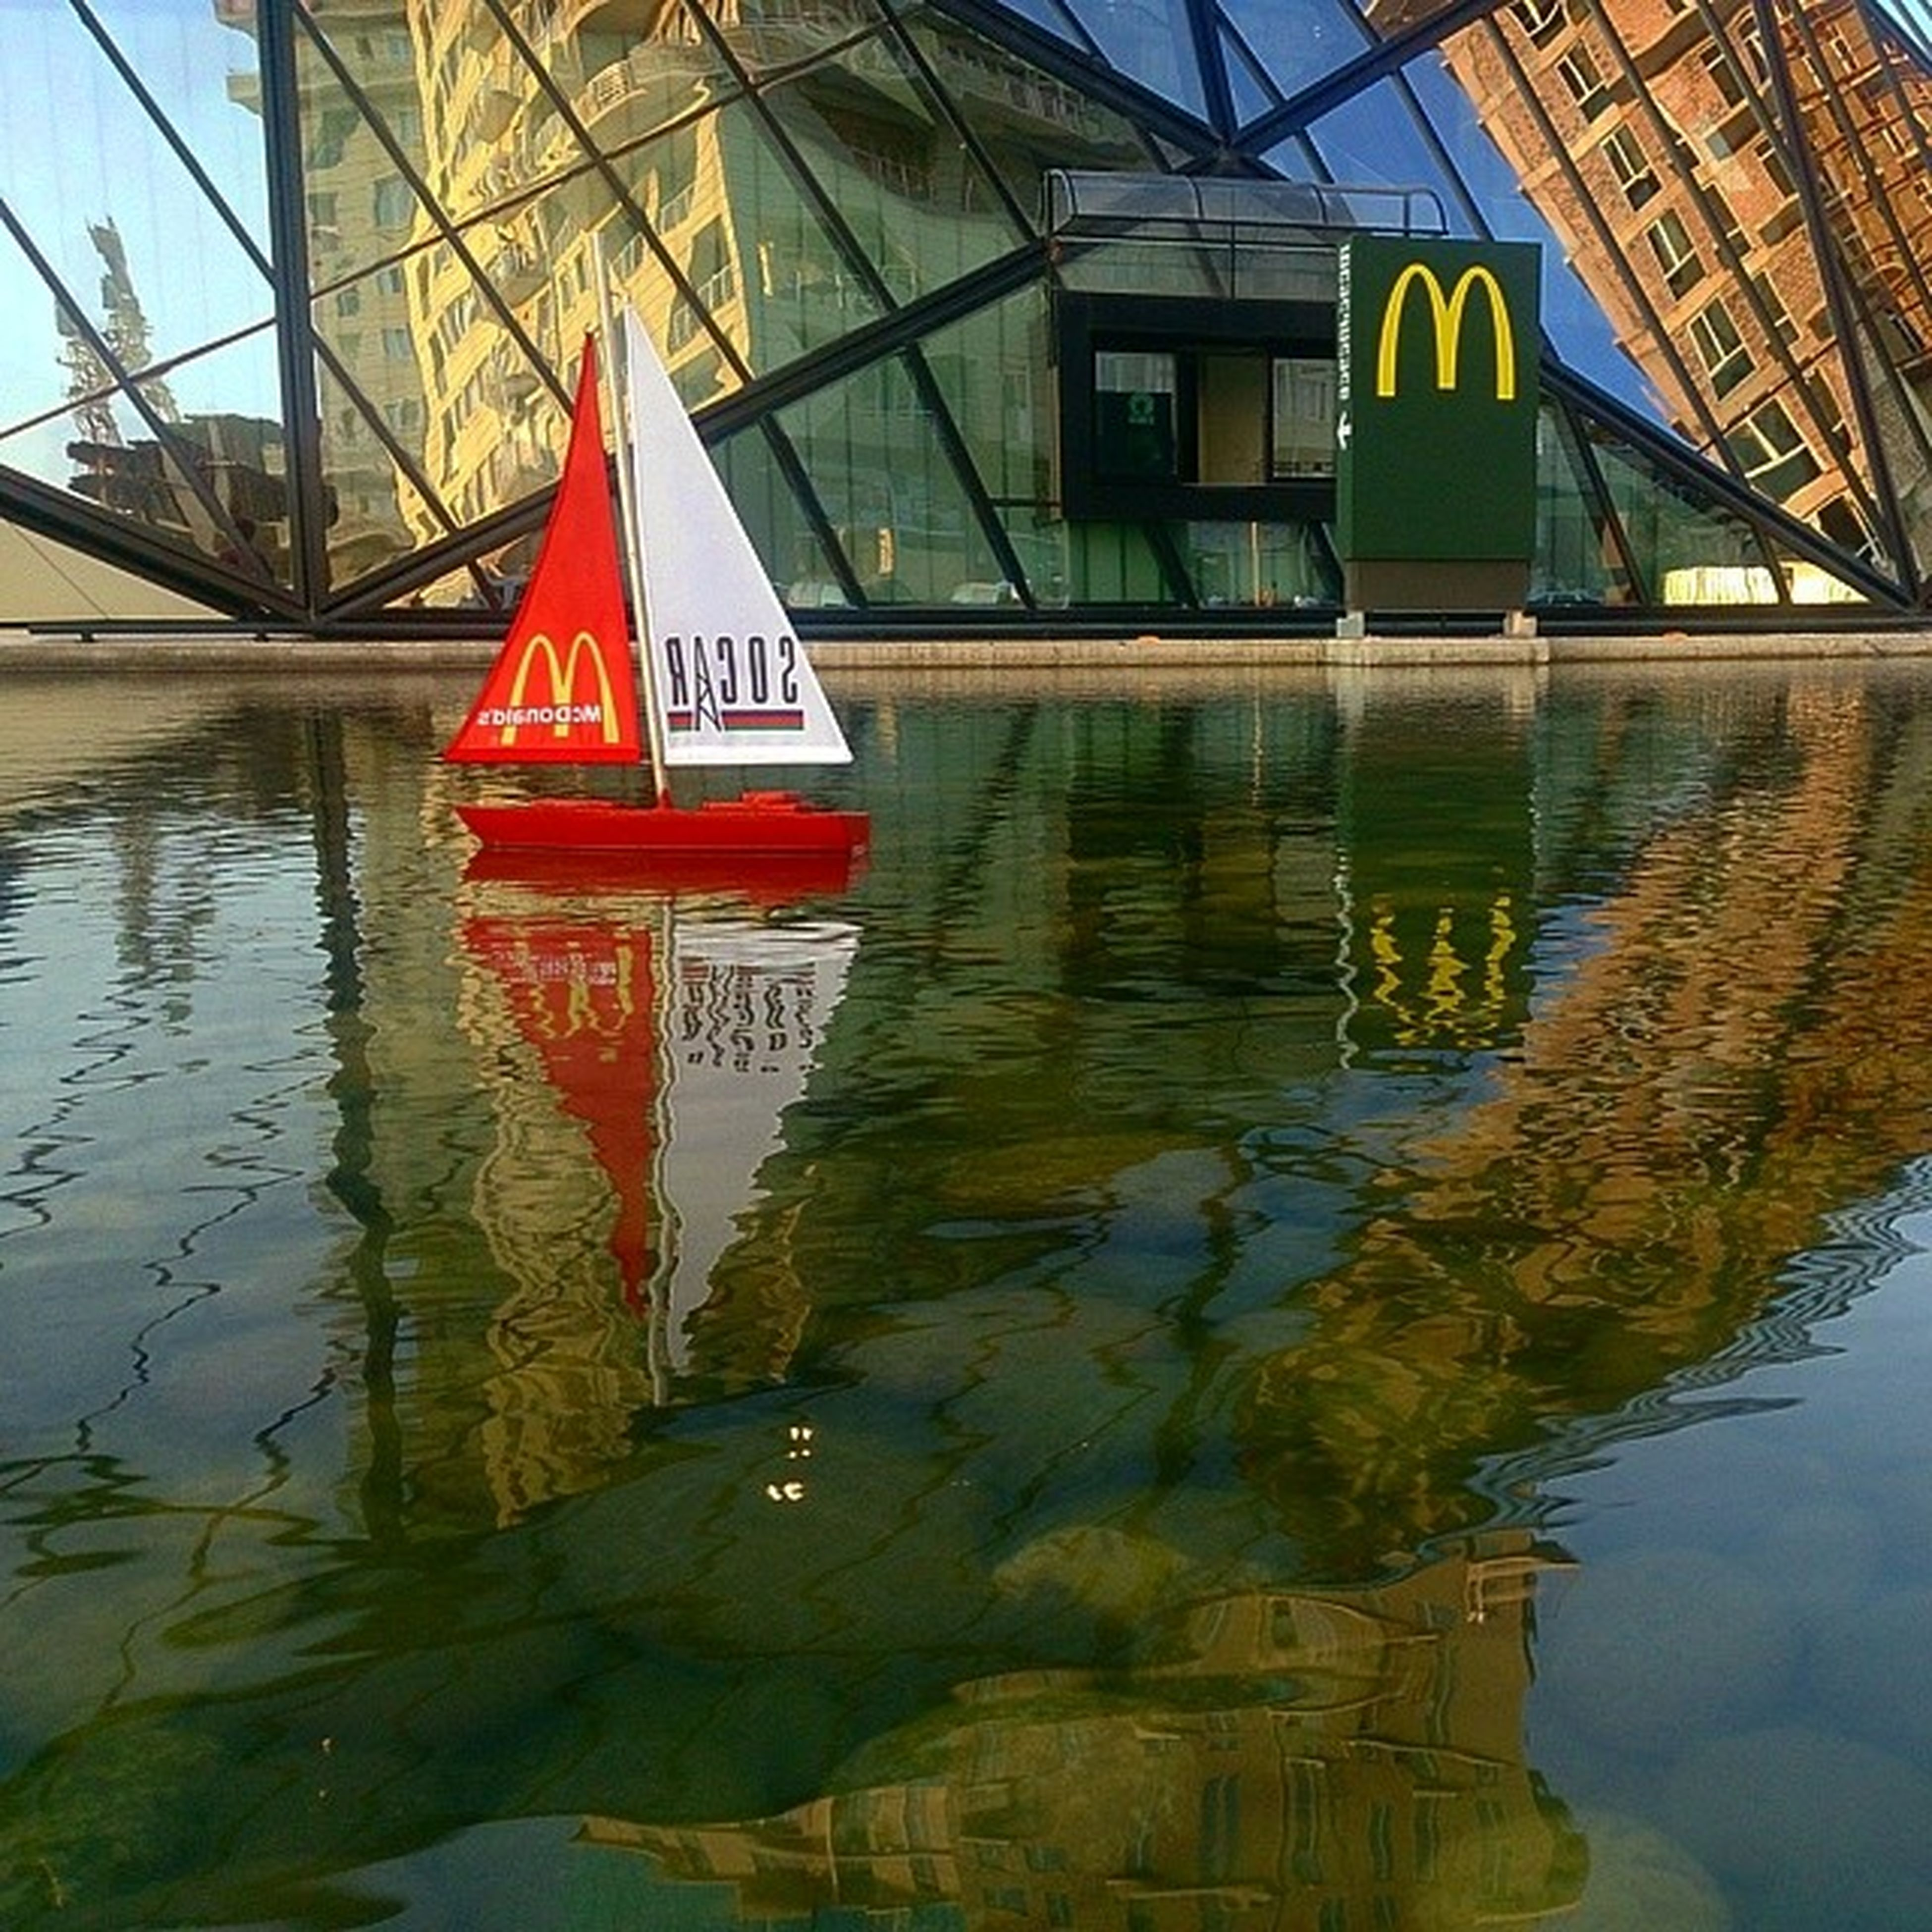 water, reflection, architecture, built structure, transportation, nautical vessel, waterfront, building exterior, boat, mode of transport, canal, moored, river, lake, day, outdoors, rippled, no people, connection, bridge - man made structure